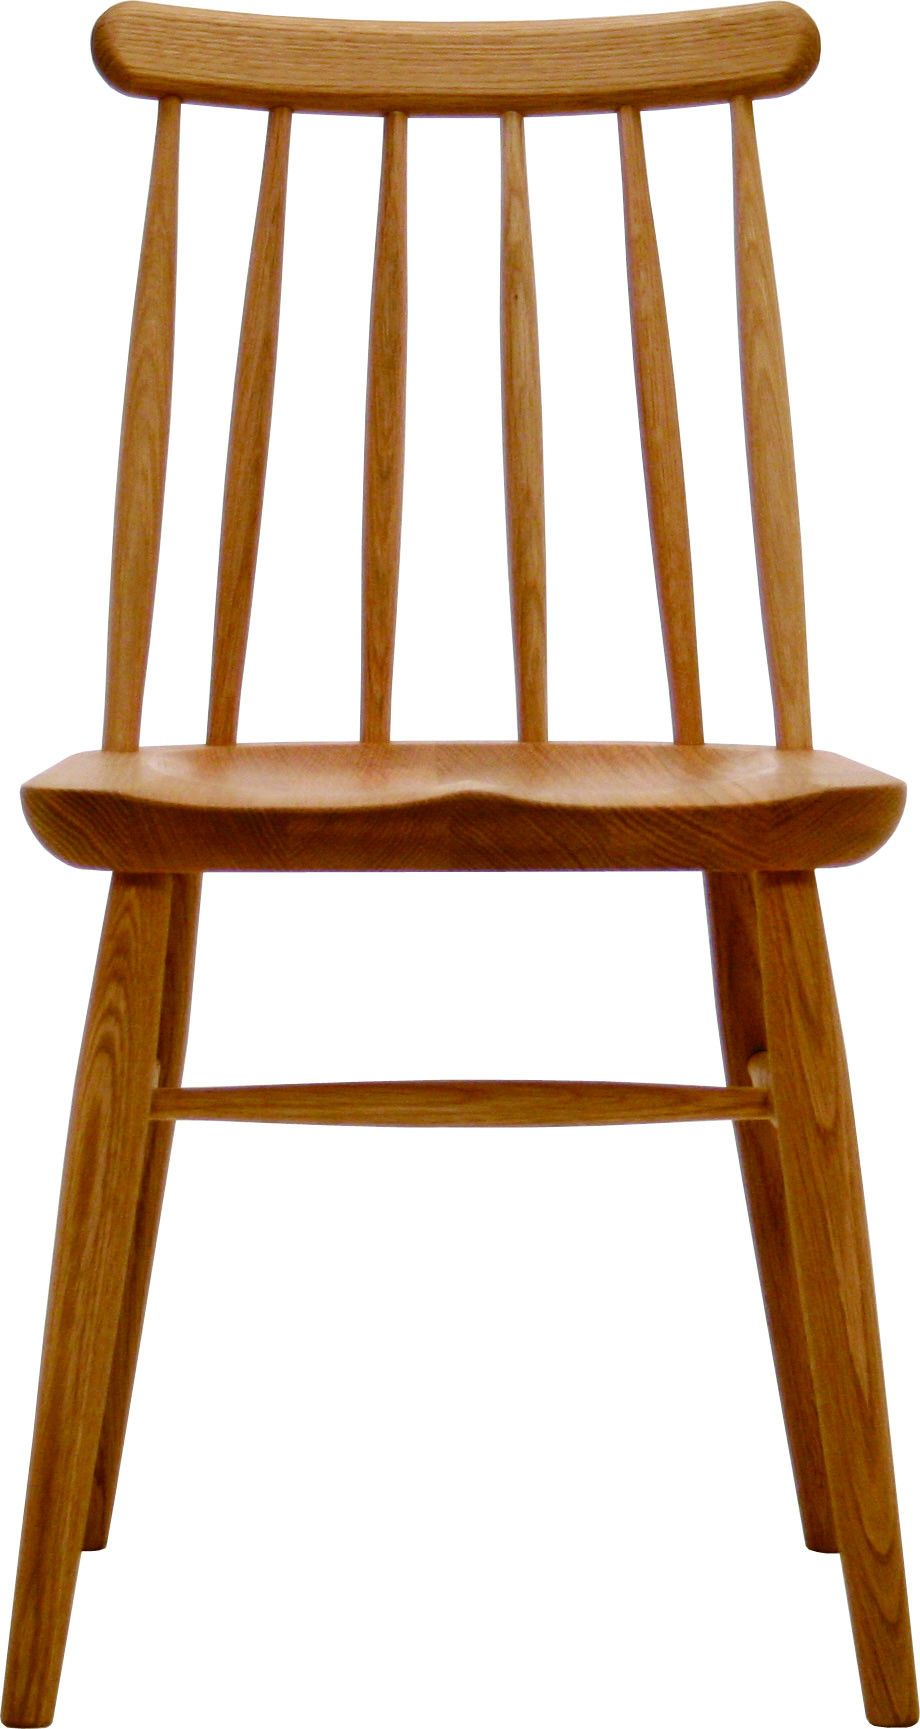 Nagano Interior - Friendly chair - Dining Chair